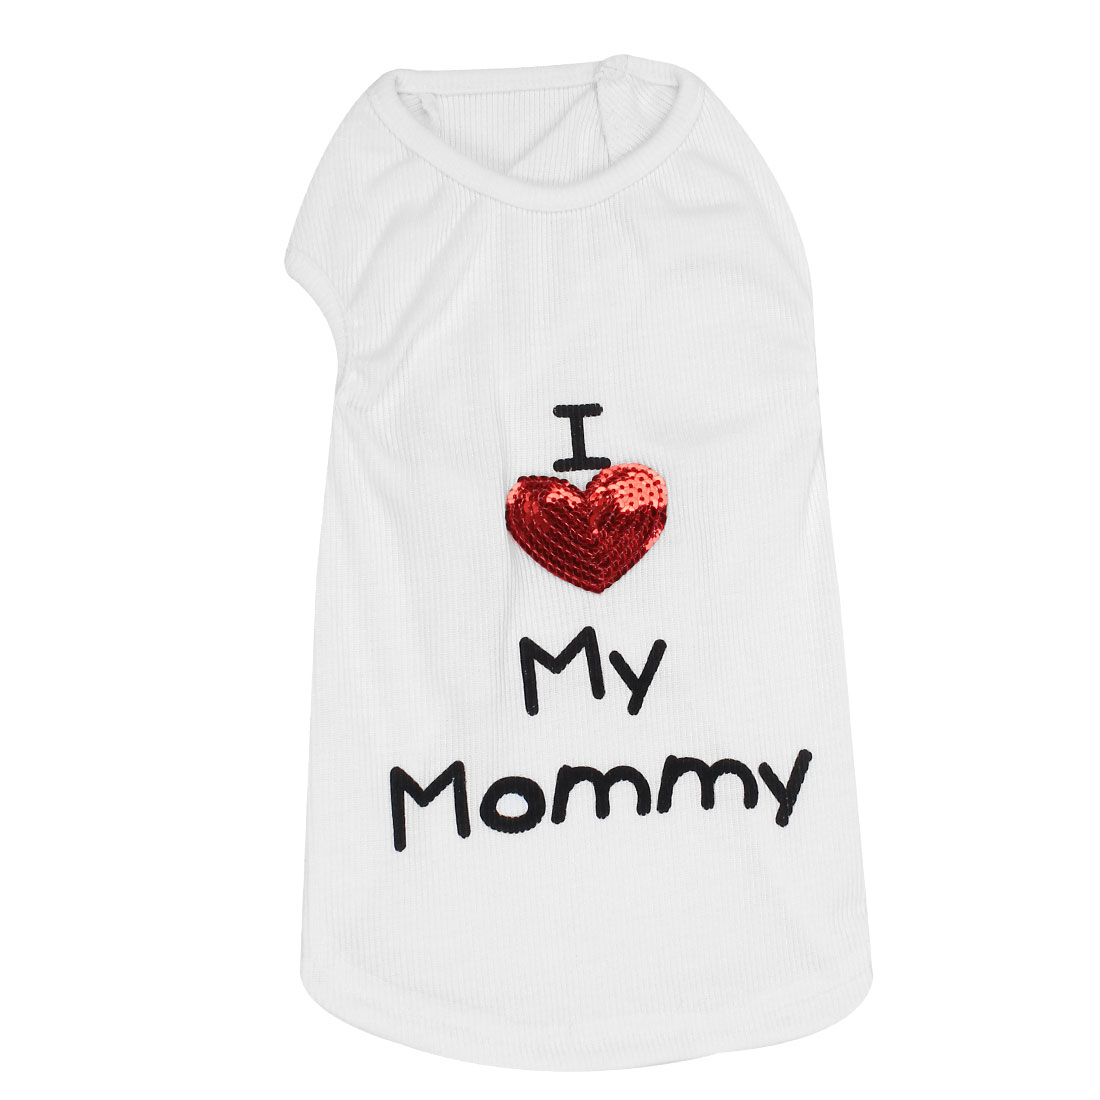 I Love My Daddy Pet Puppy Summer Tank Top T-shirt Vest Clothes Apparel White Size S